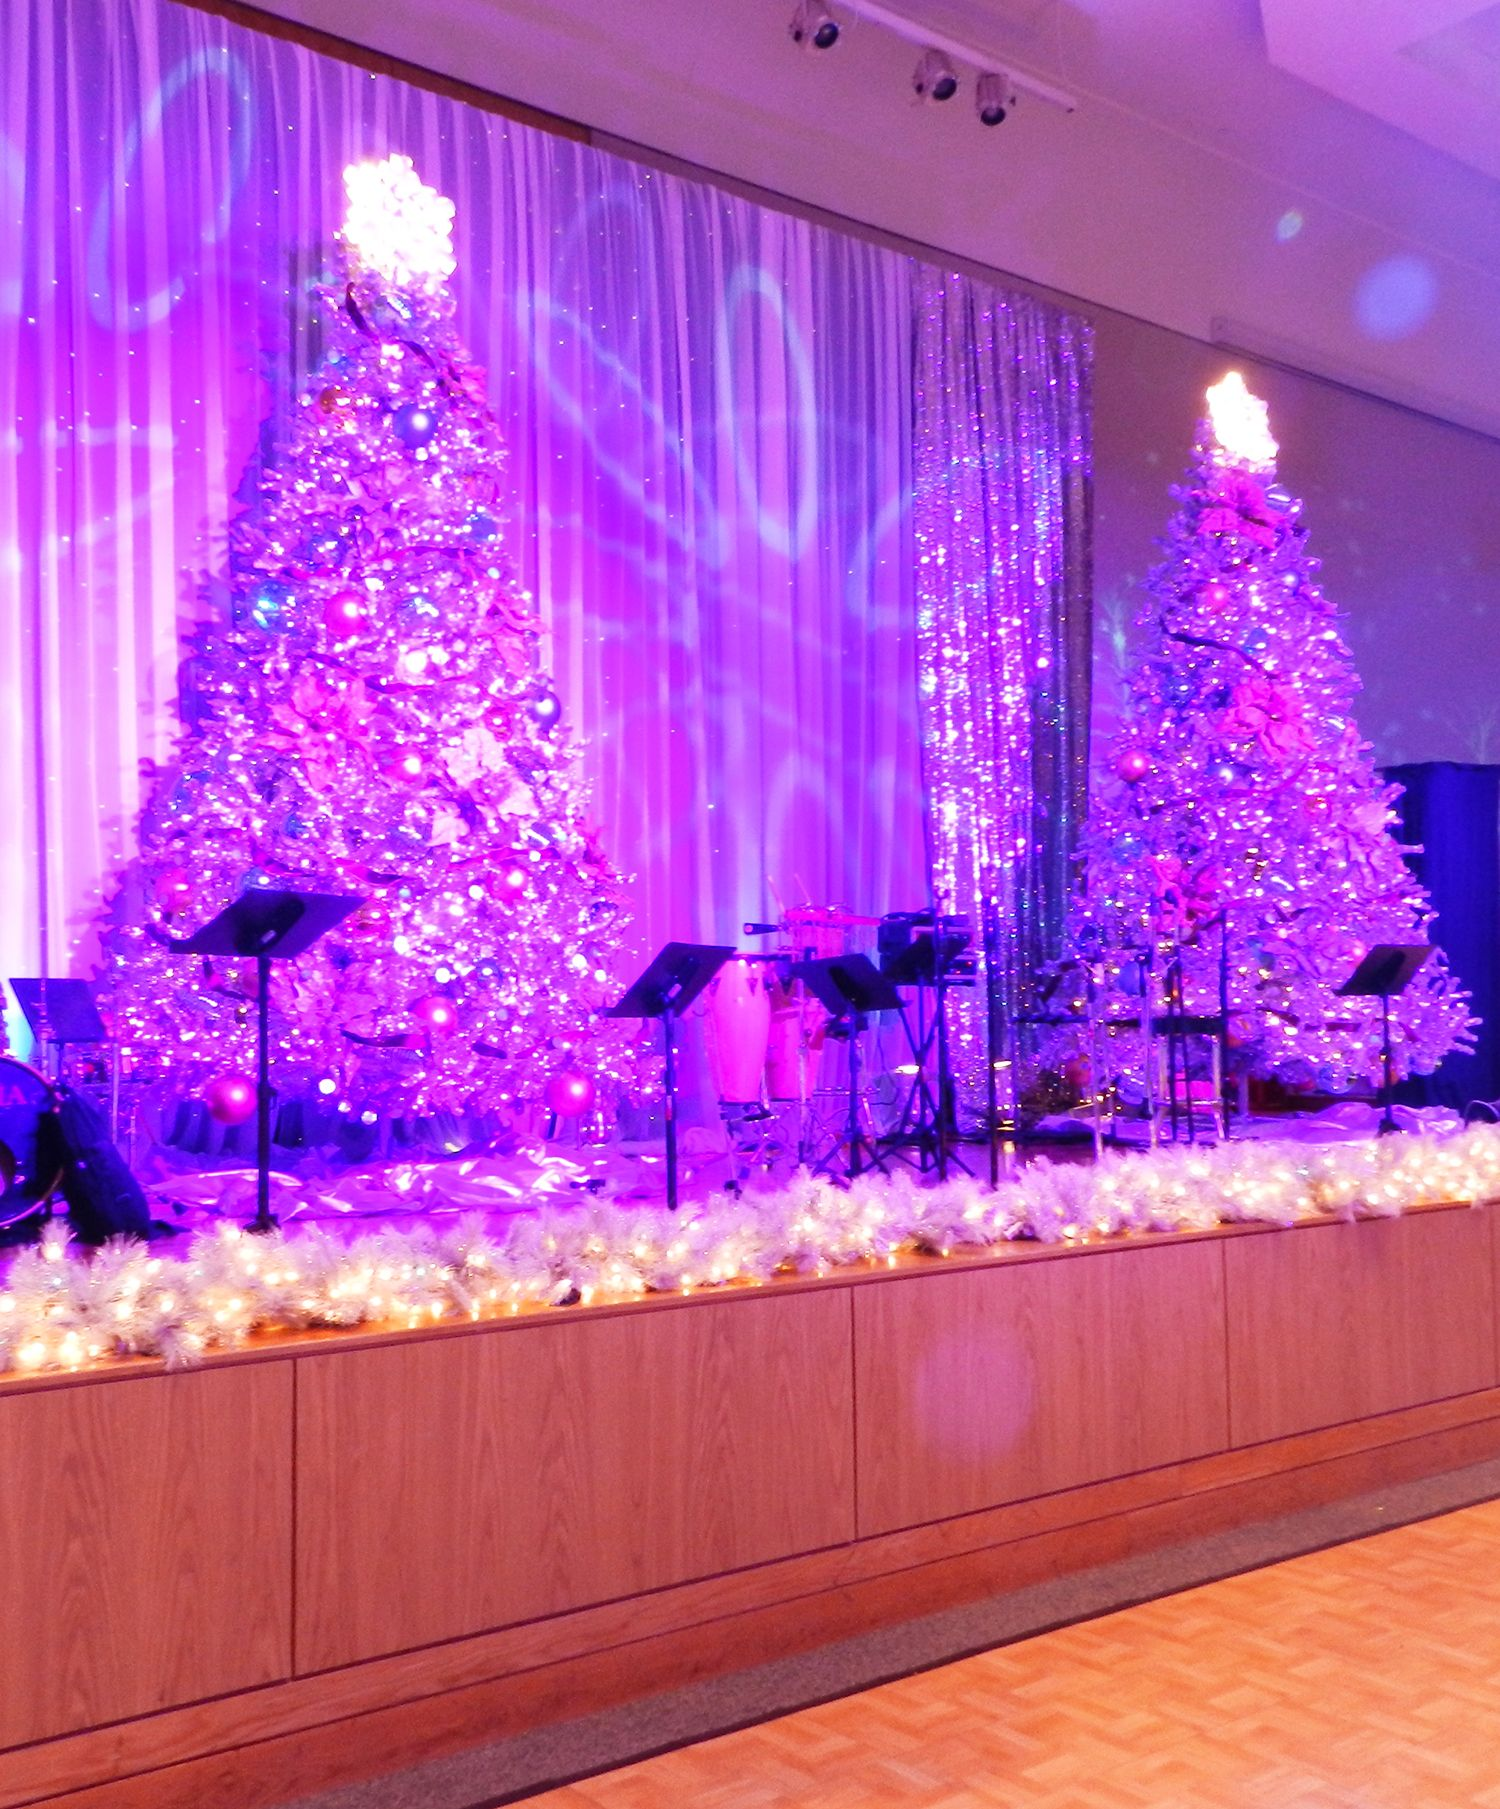 Blue christmas decorations party ideas blue christmas decorations - Beautiful Blue Christmas Stage Christmas Trees Stage Lights Eventuresinc